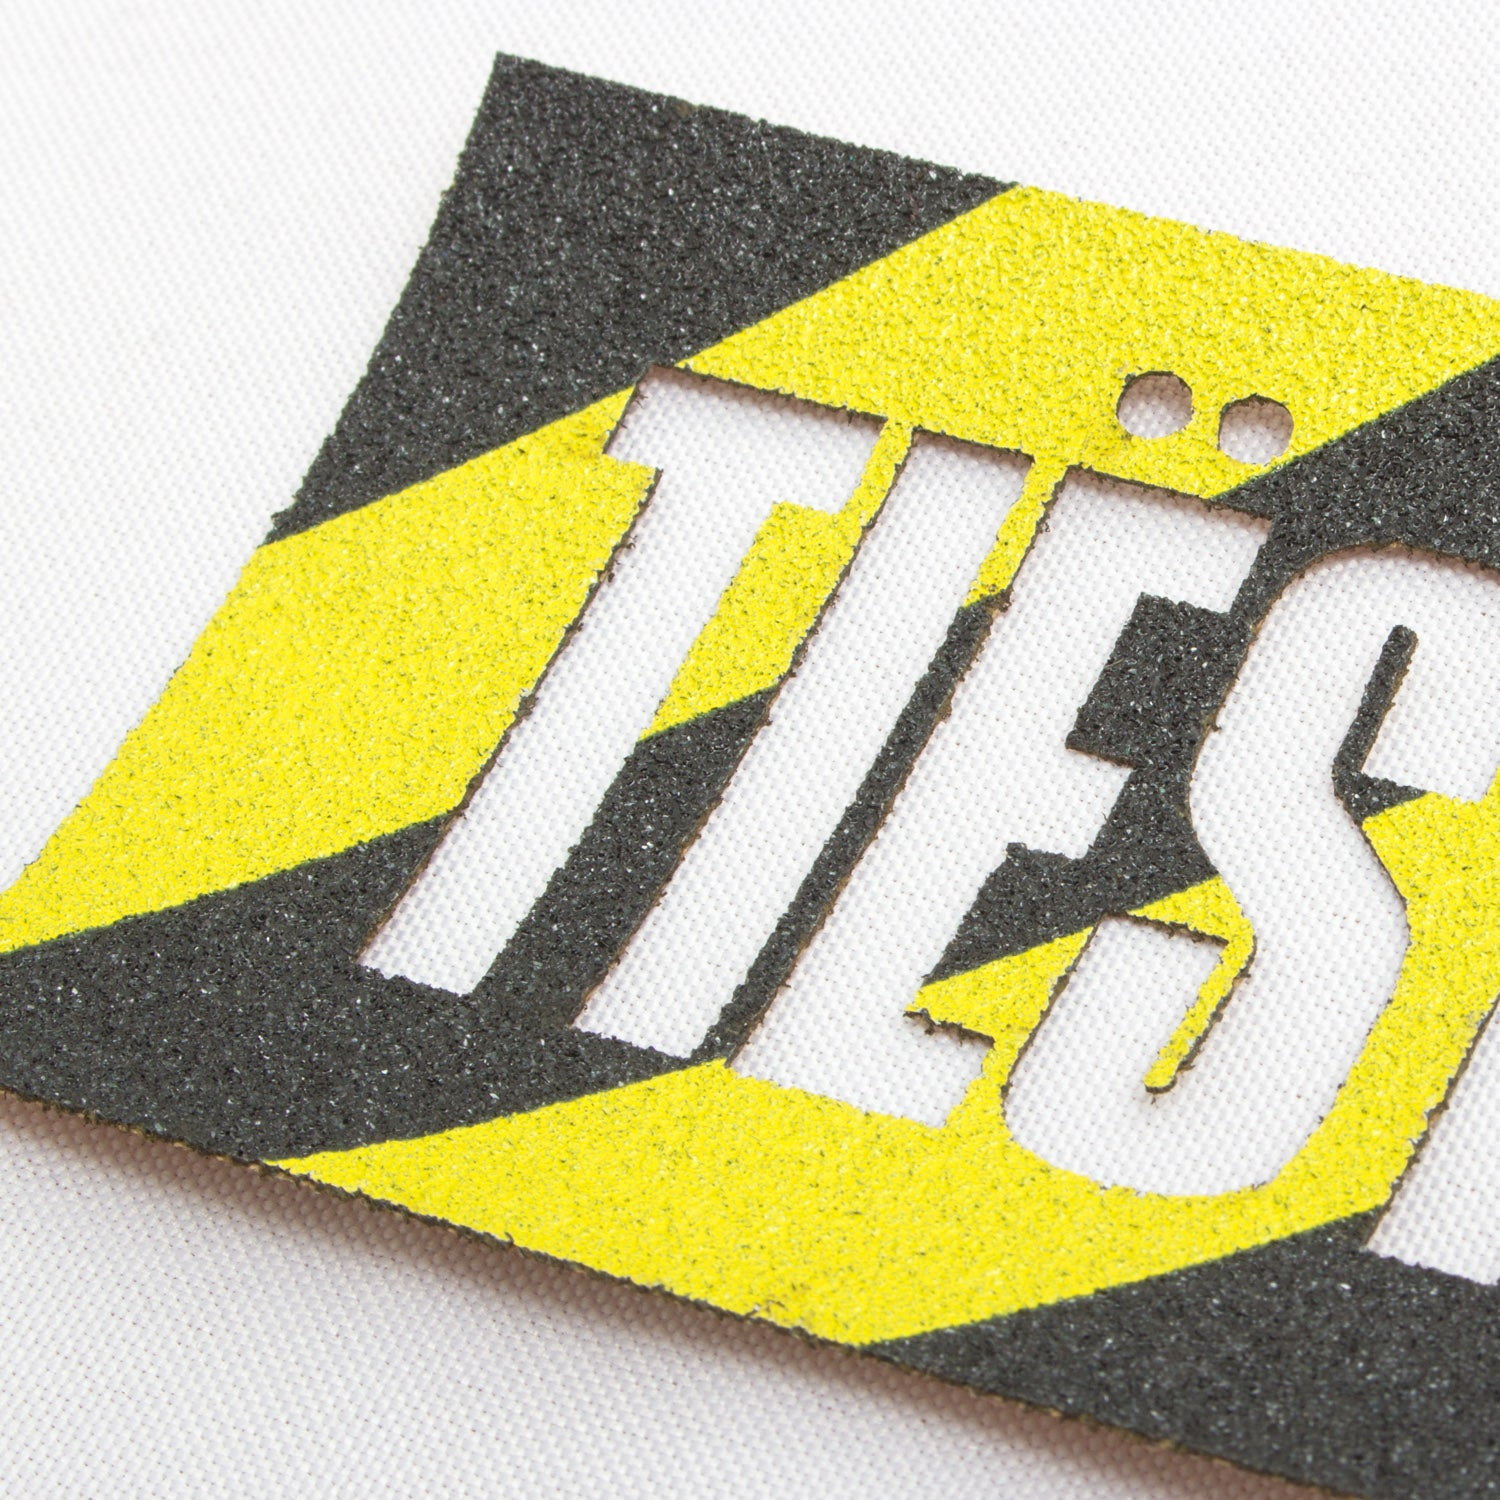 Tiësto Grip Tape Decal